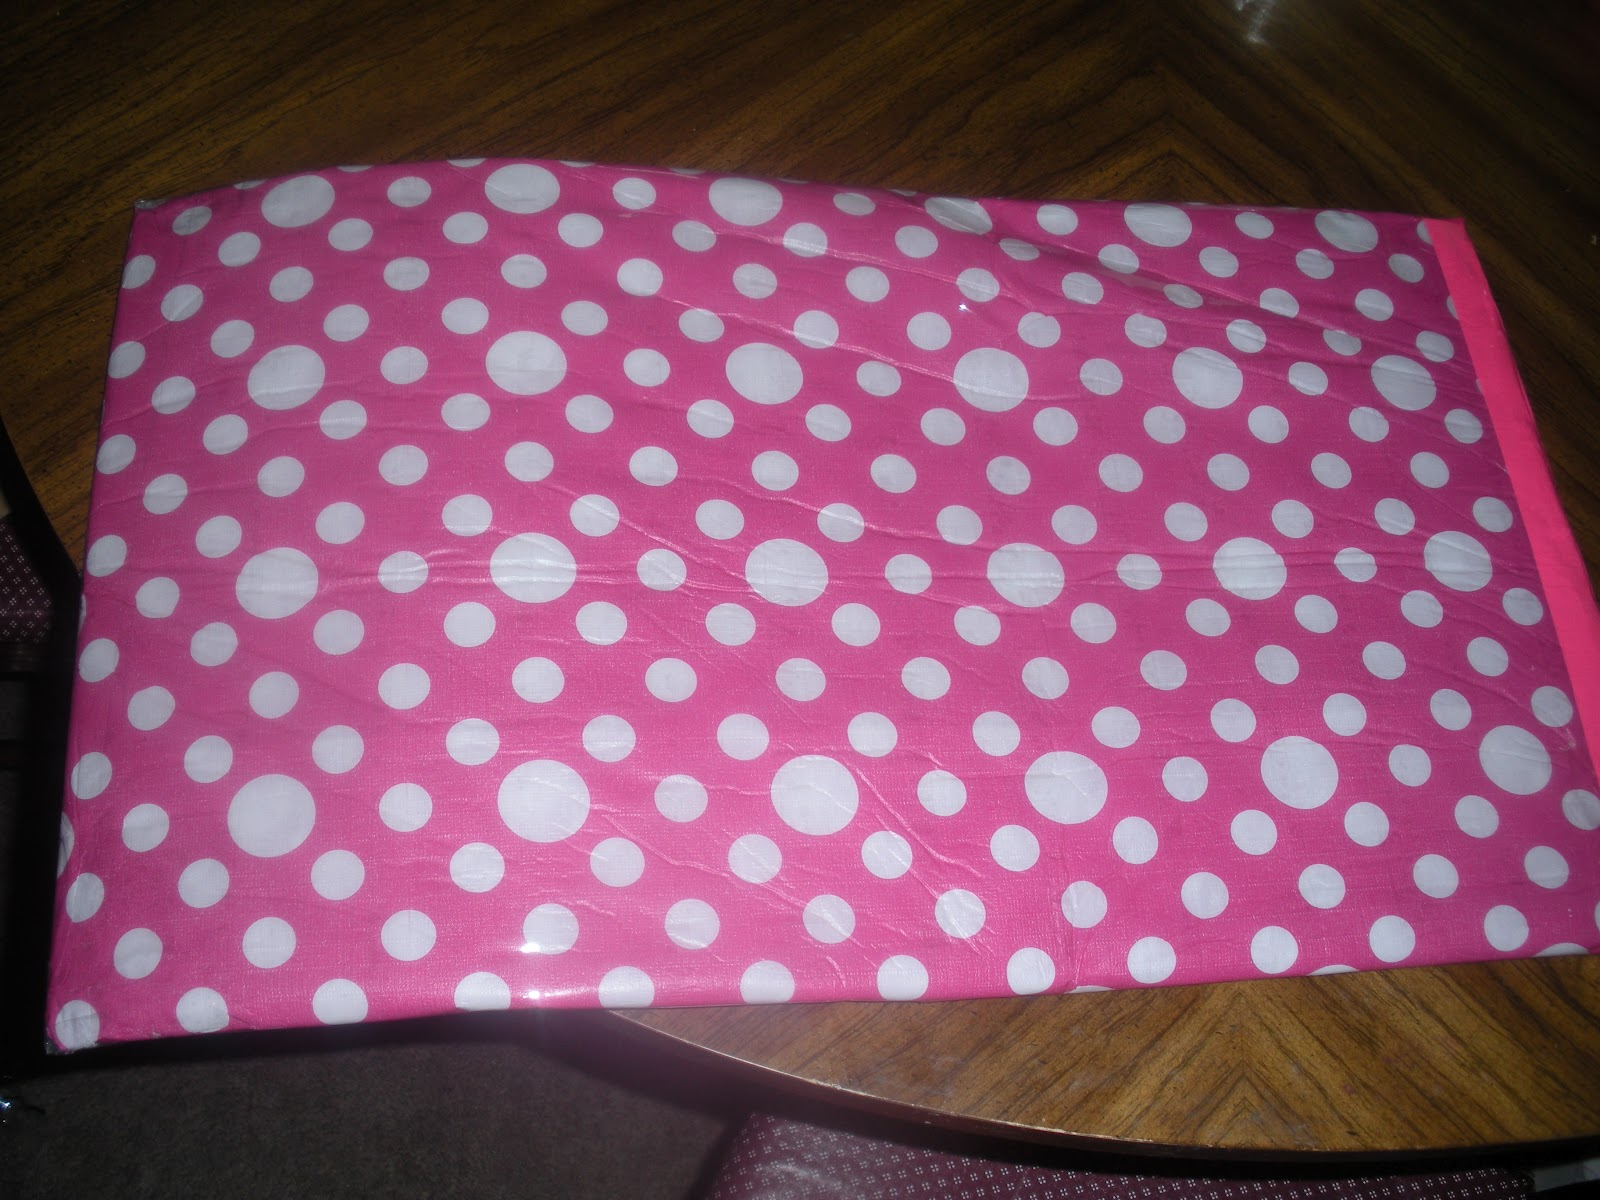 than scissors easy other gymnastics make tape two inexpensive color mat rul all you pin super diy mats beam idea to and is your need